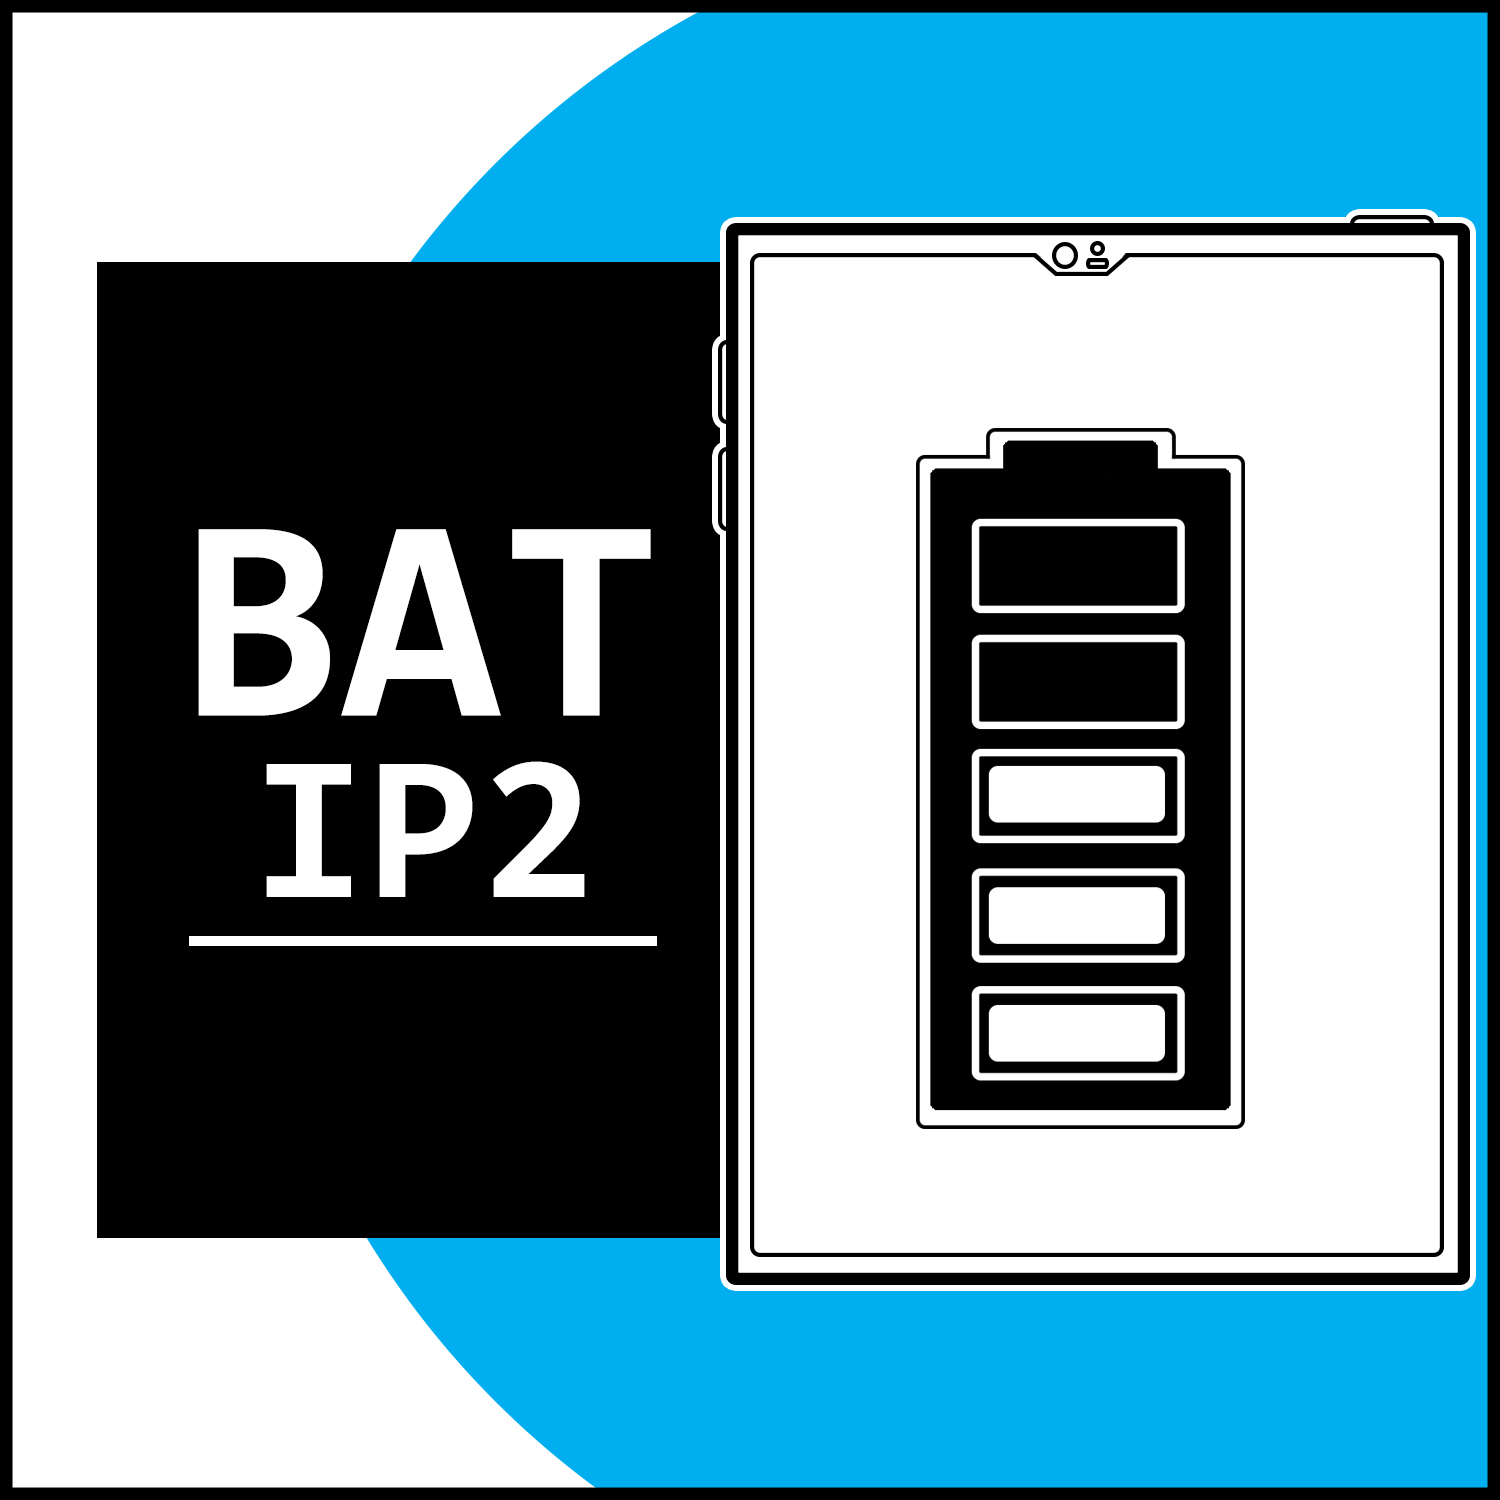 ip2 BAT logo.jpg